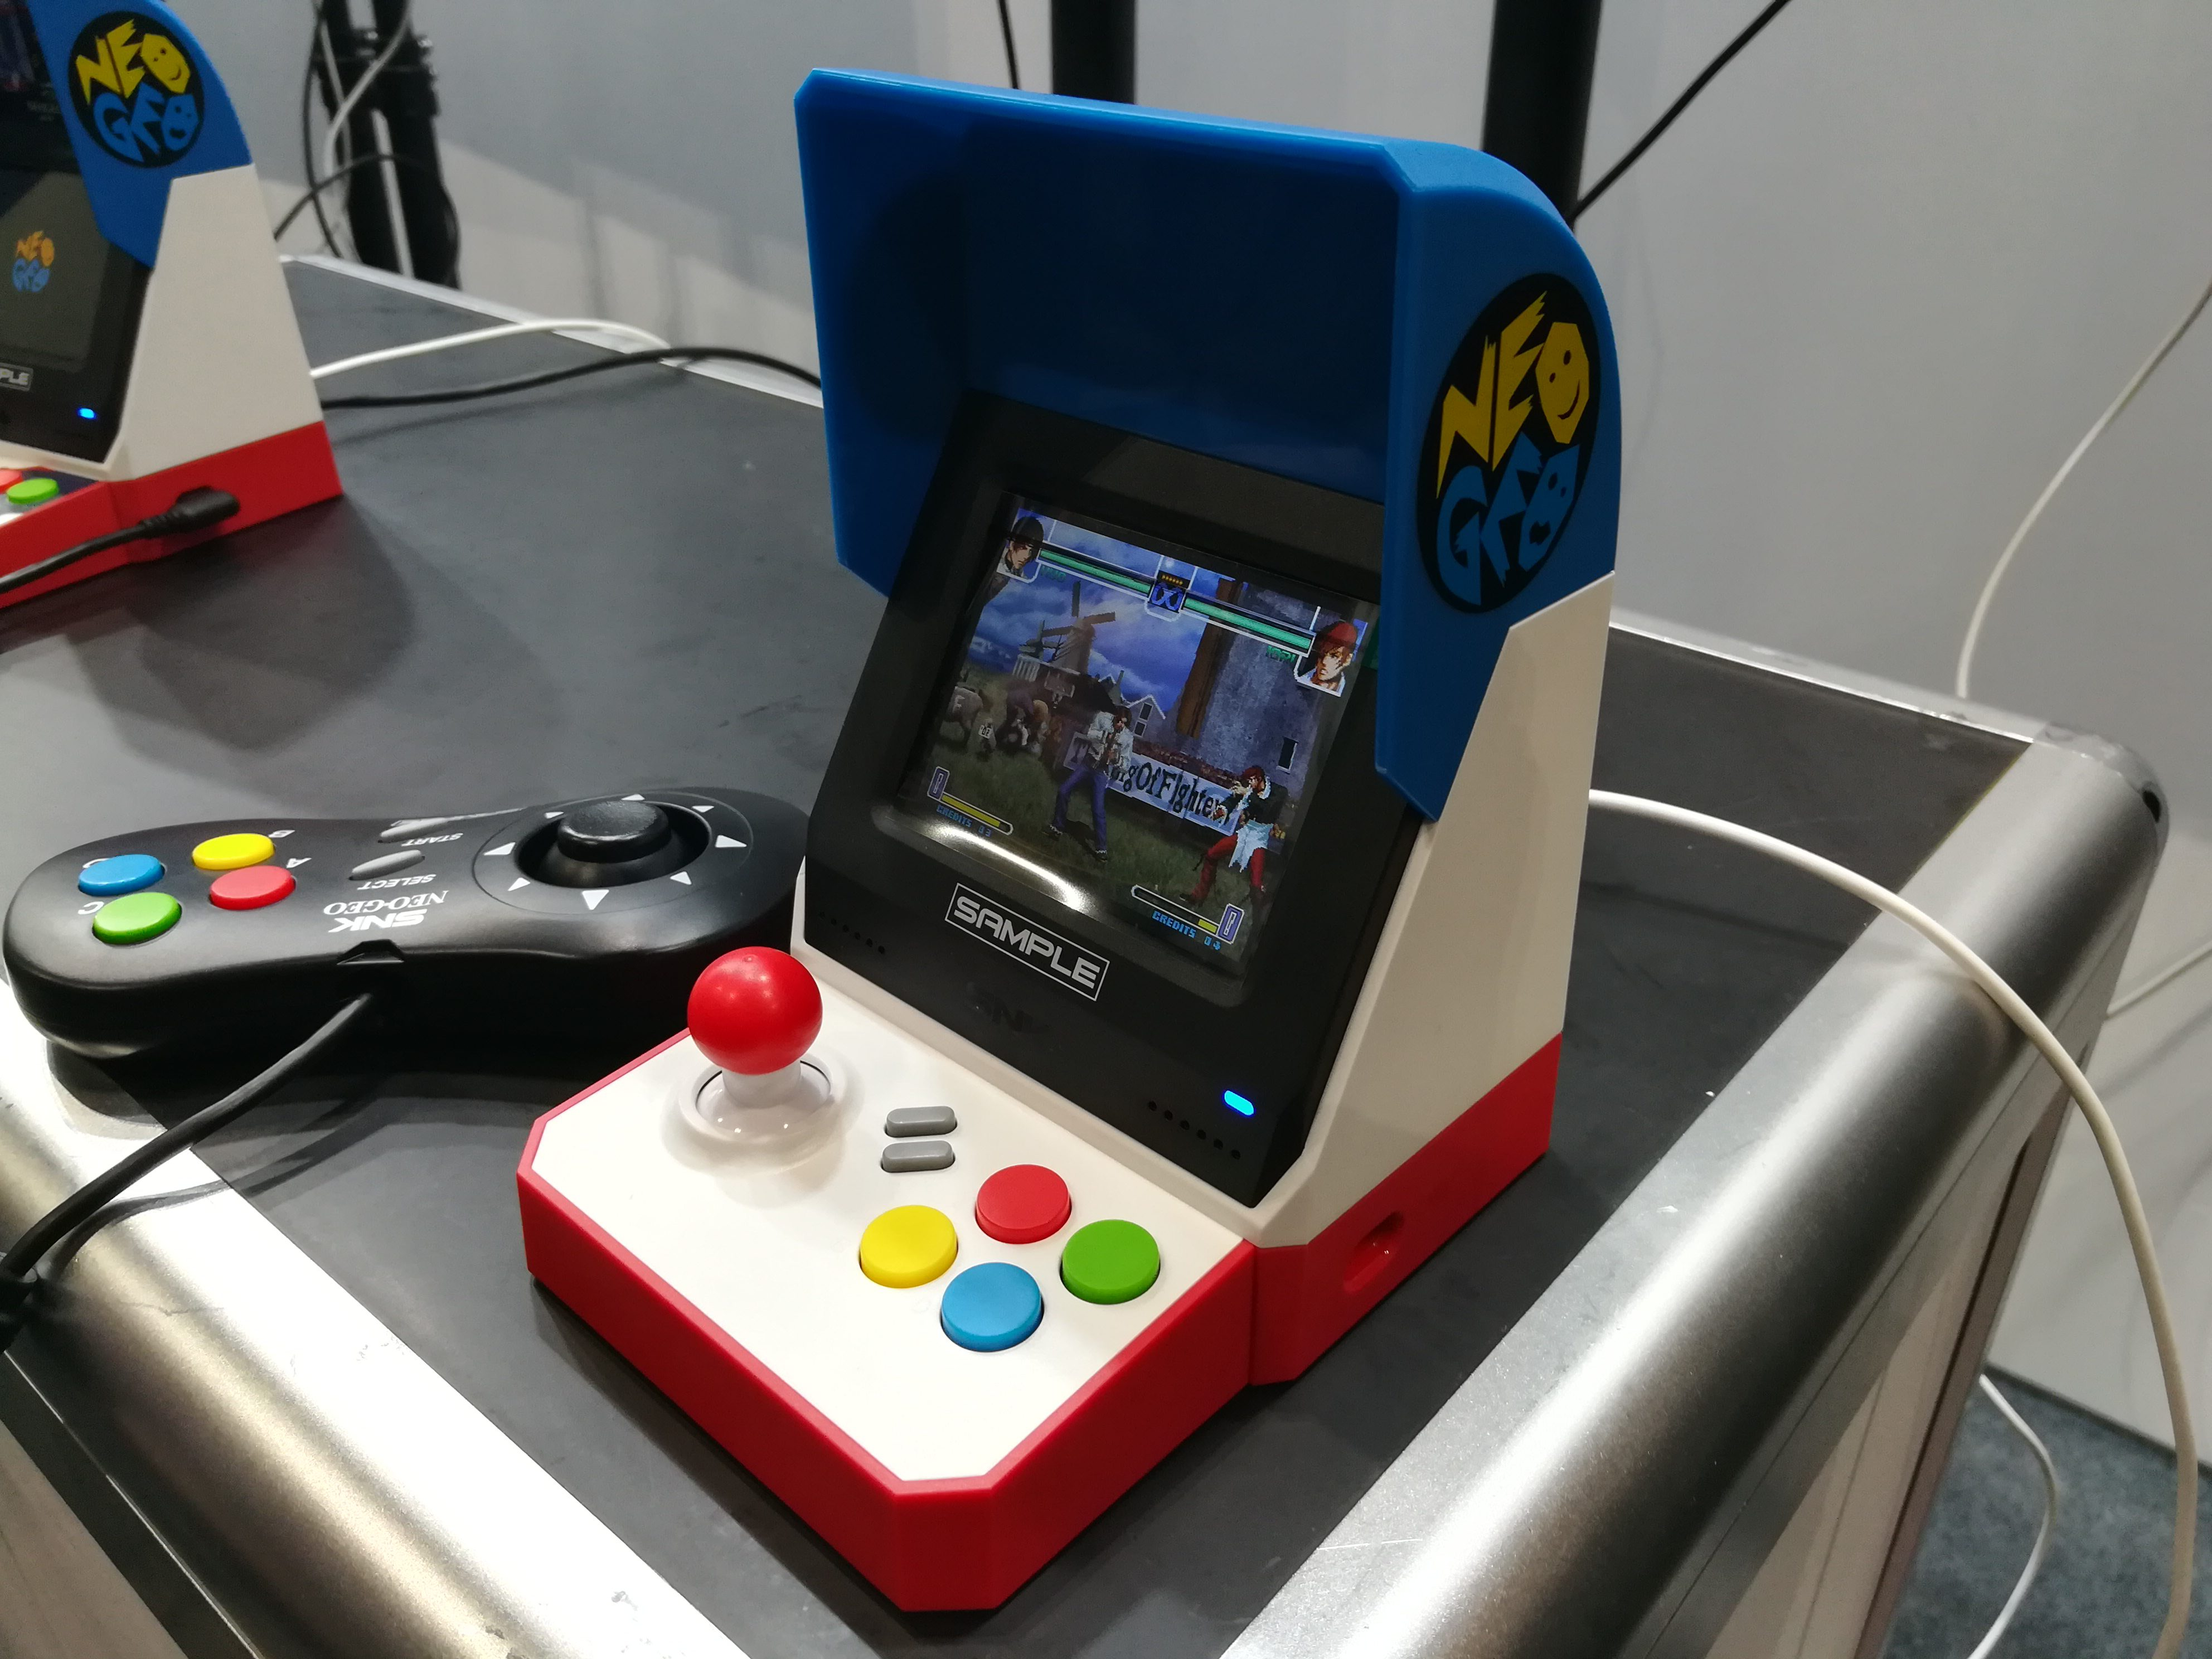 We played with the SNK NeoGeo mini arcade console at E3! - Gambit